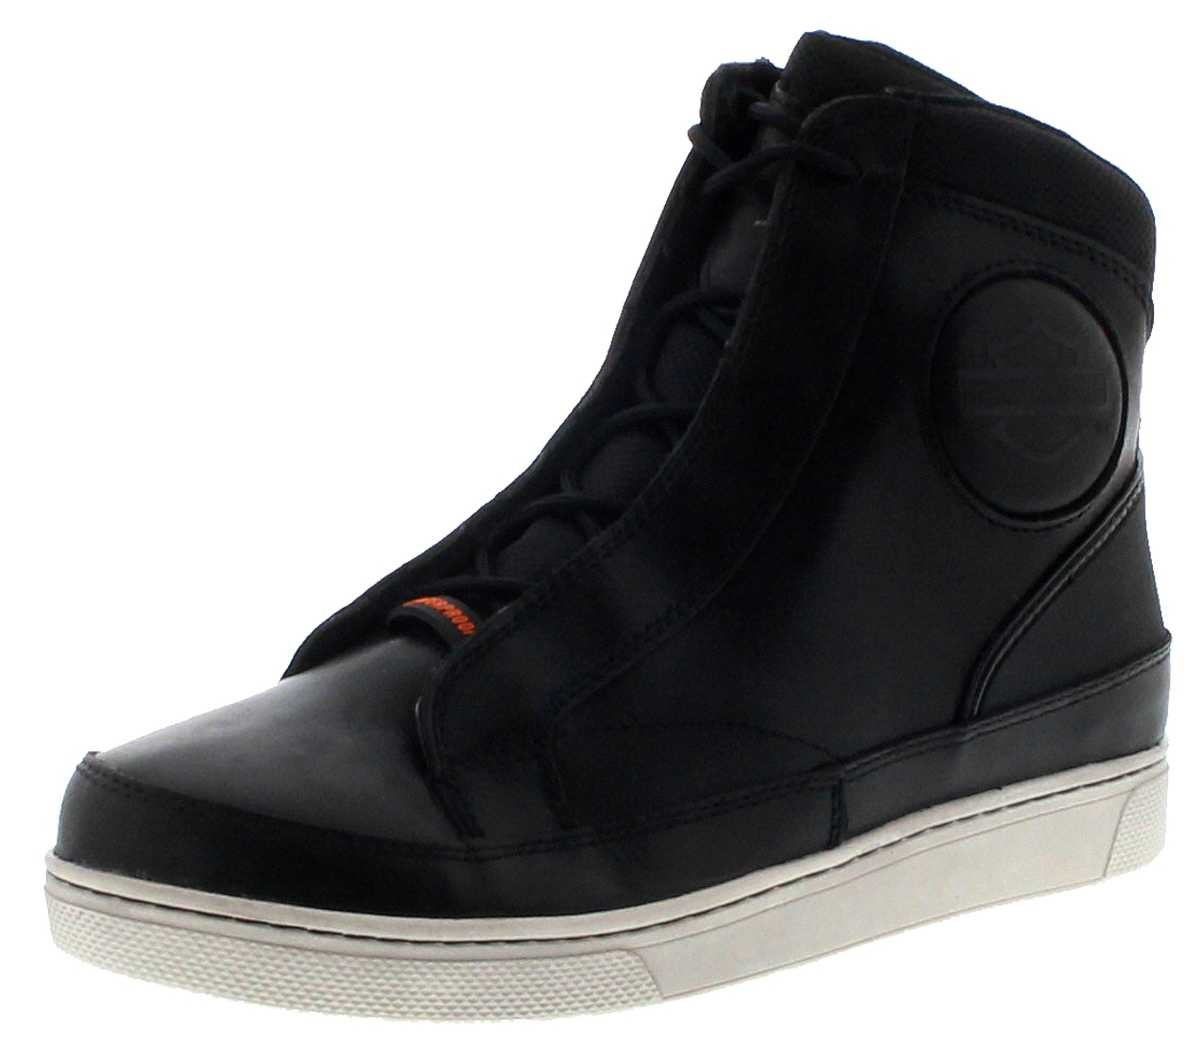 Harley Davidson D97094 VARDON CE Black waterproof men's high top sneaker - black